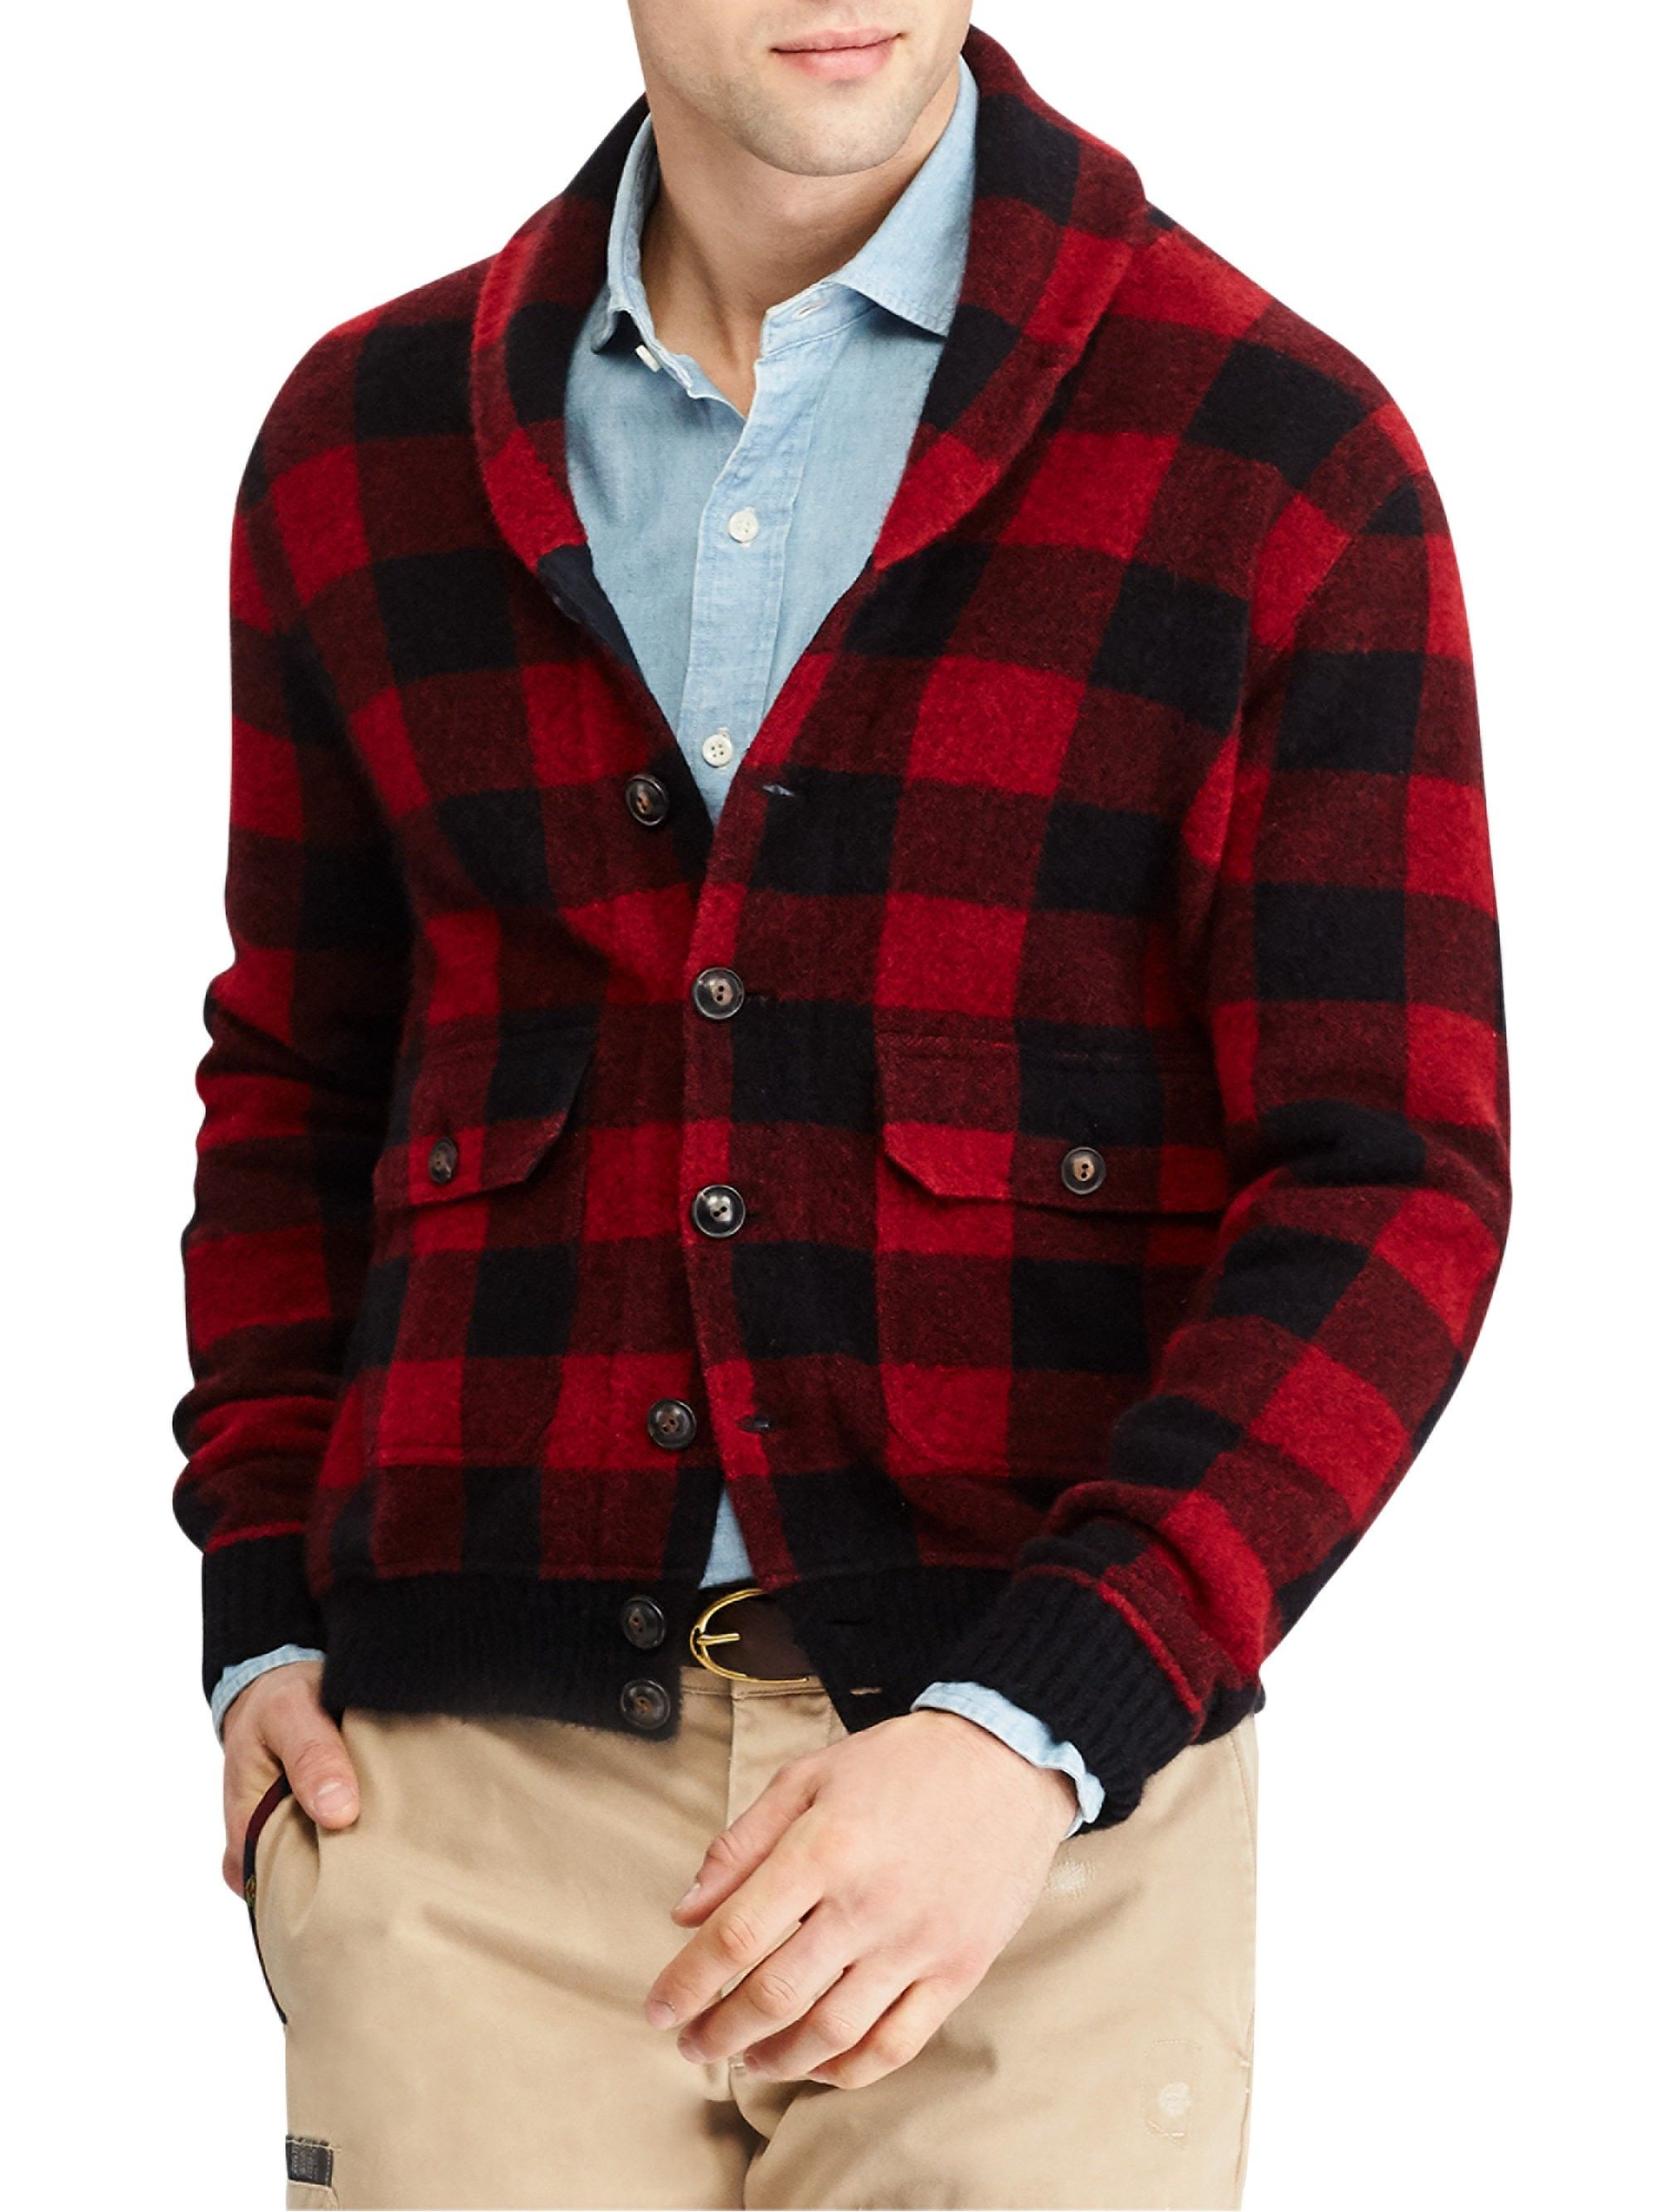 Ralph Lauren Flannel Skeet Jacket Red Black Small